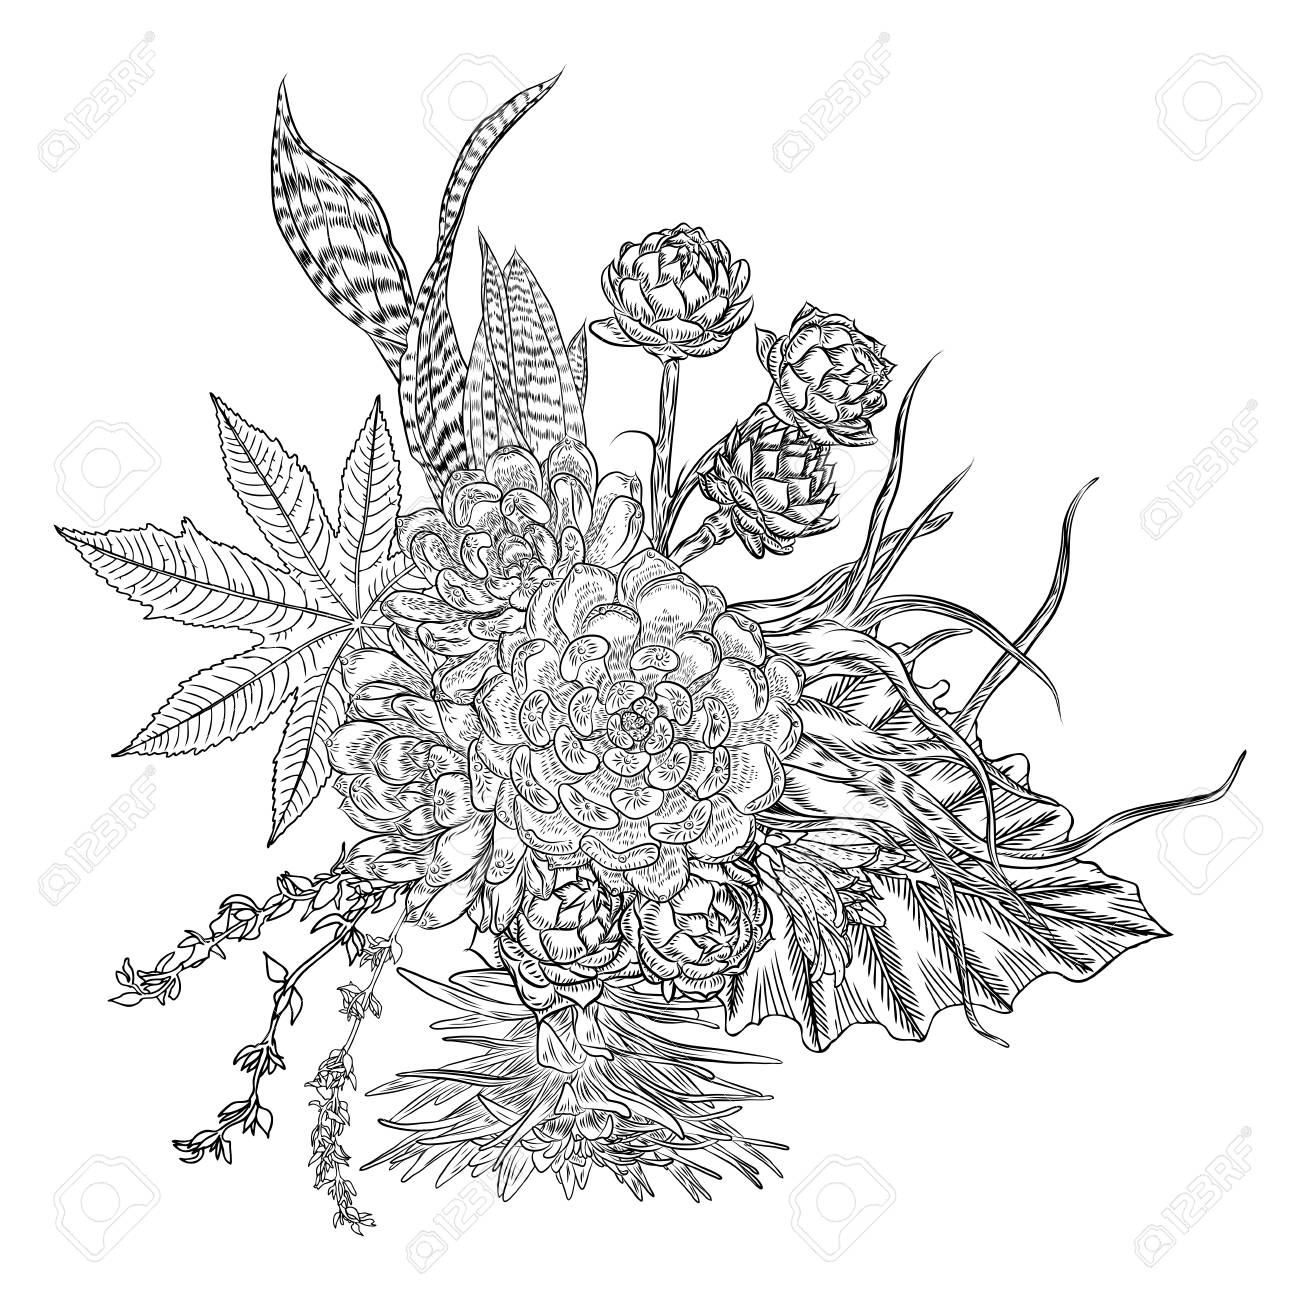 Composition Of Succulents Cactus Green Plants Botanical Drawing Royalty Free Cliparts Vectors And Stock Illustration Image 104013572